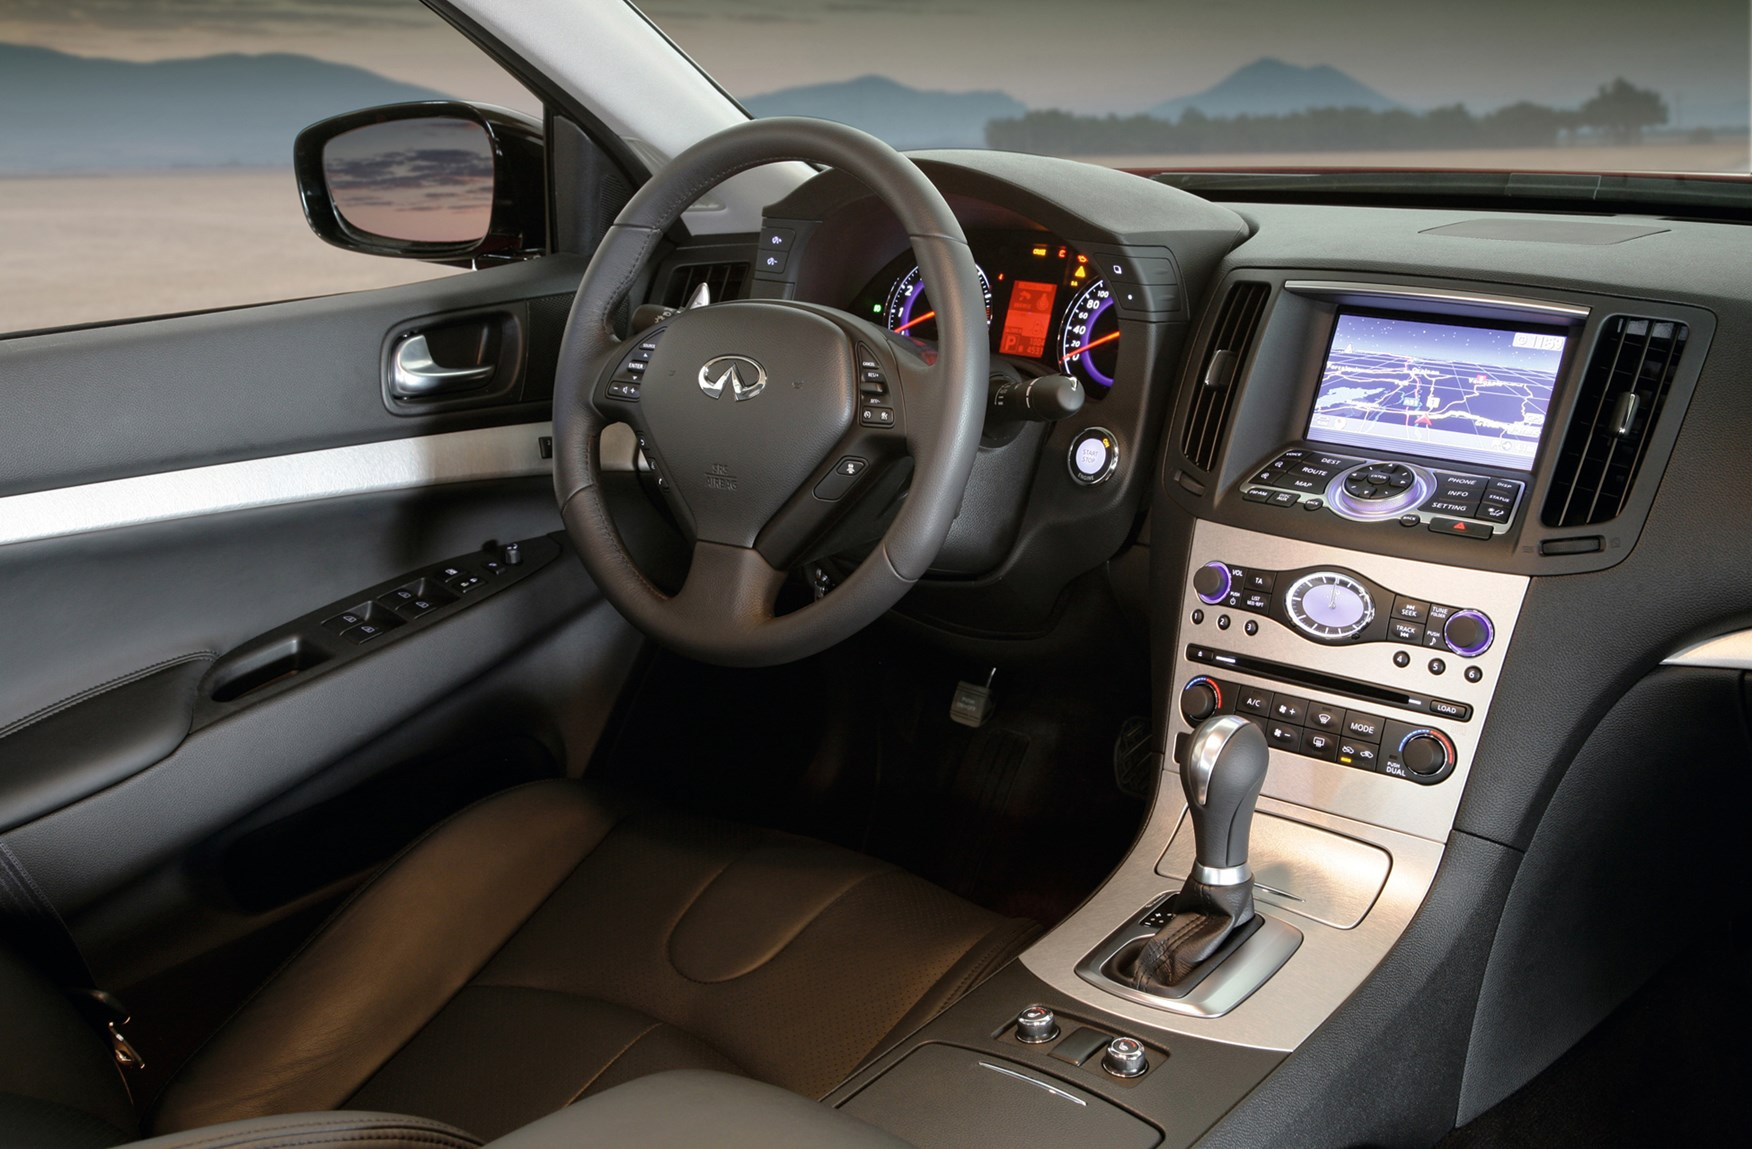 infiniti g37 coupe 2015. view all images of the infiniti g saloon 0913 g37 coupe 2015